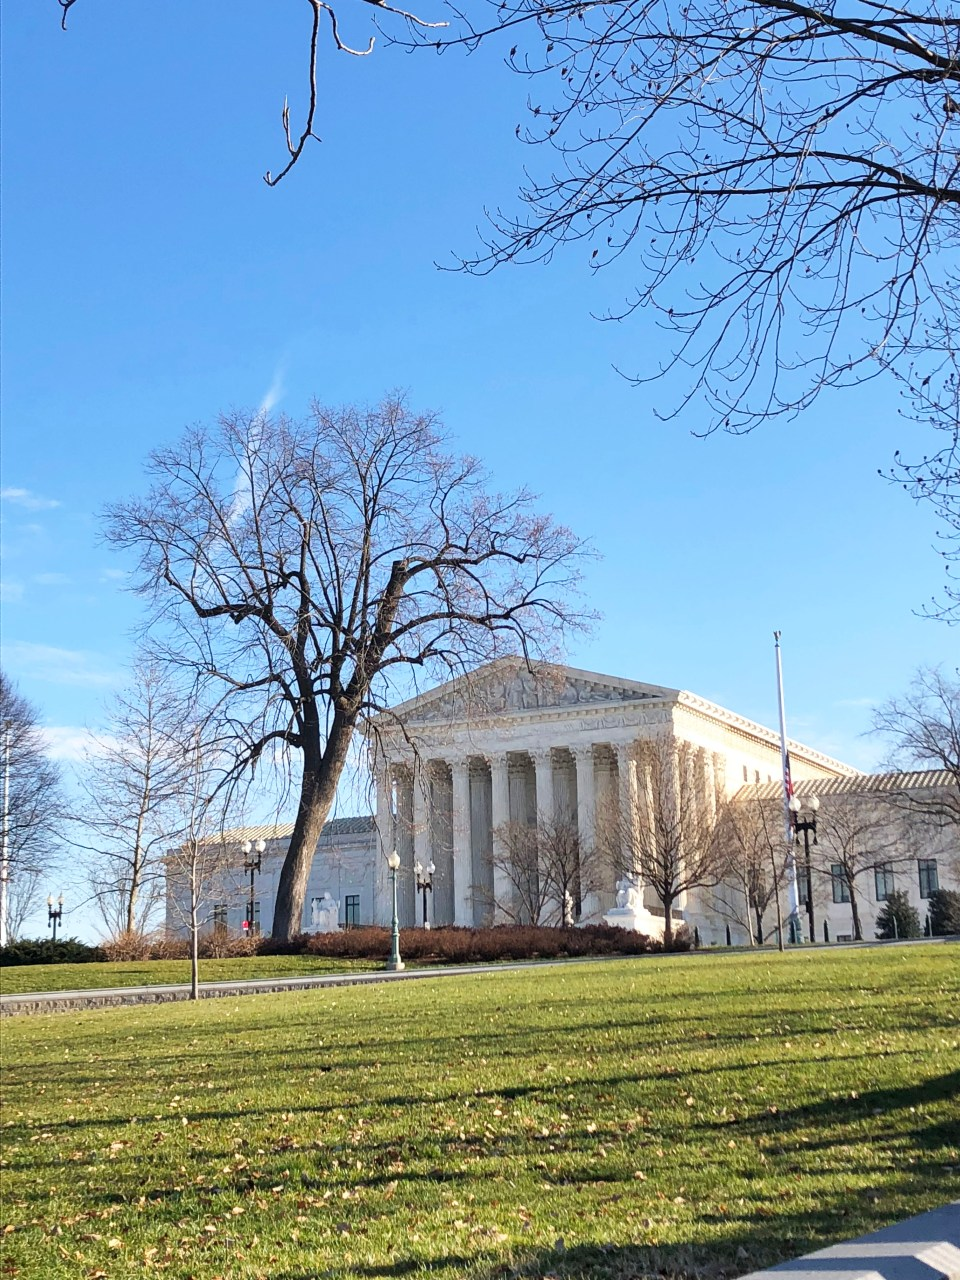 Washington DC - Supreme Court Building